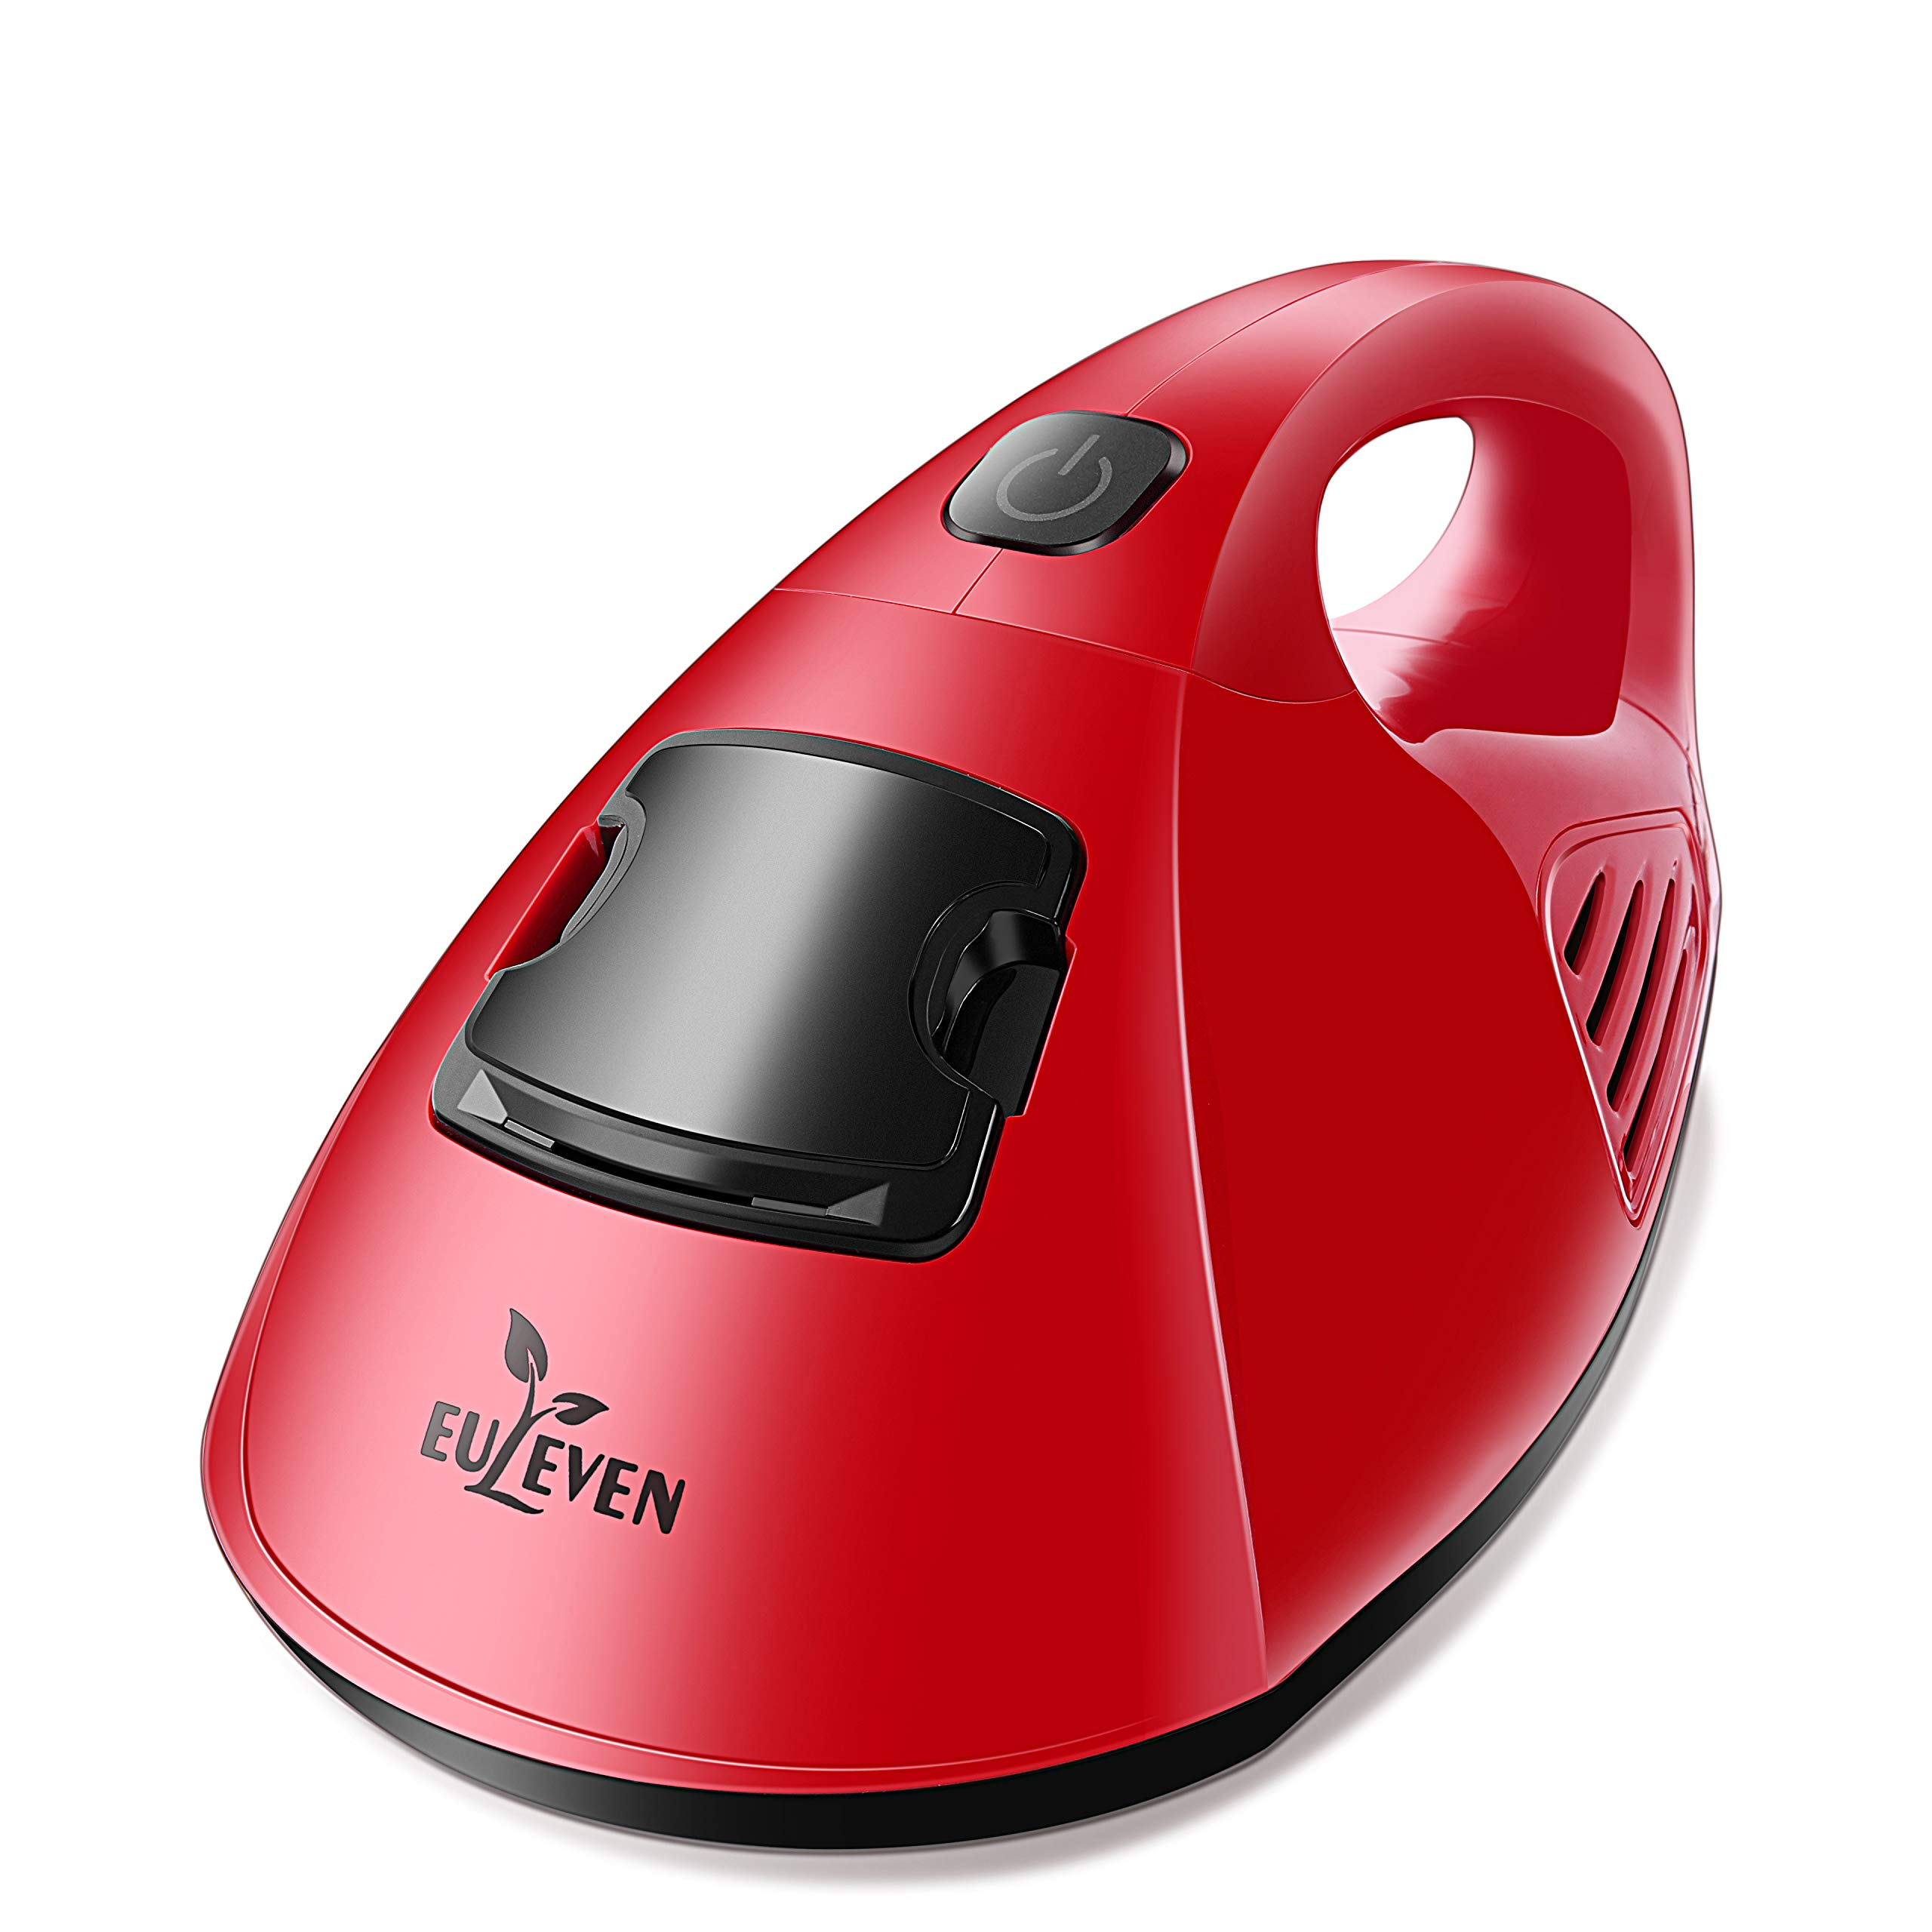 Euleven UV Handheld Vacuum Cleaner for Mattresses, Pillows, Cloth Sofas